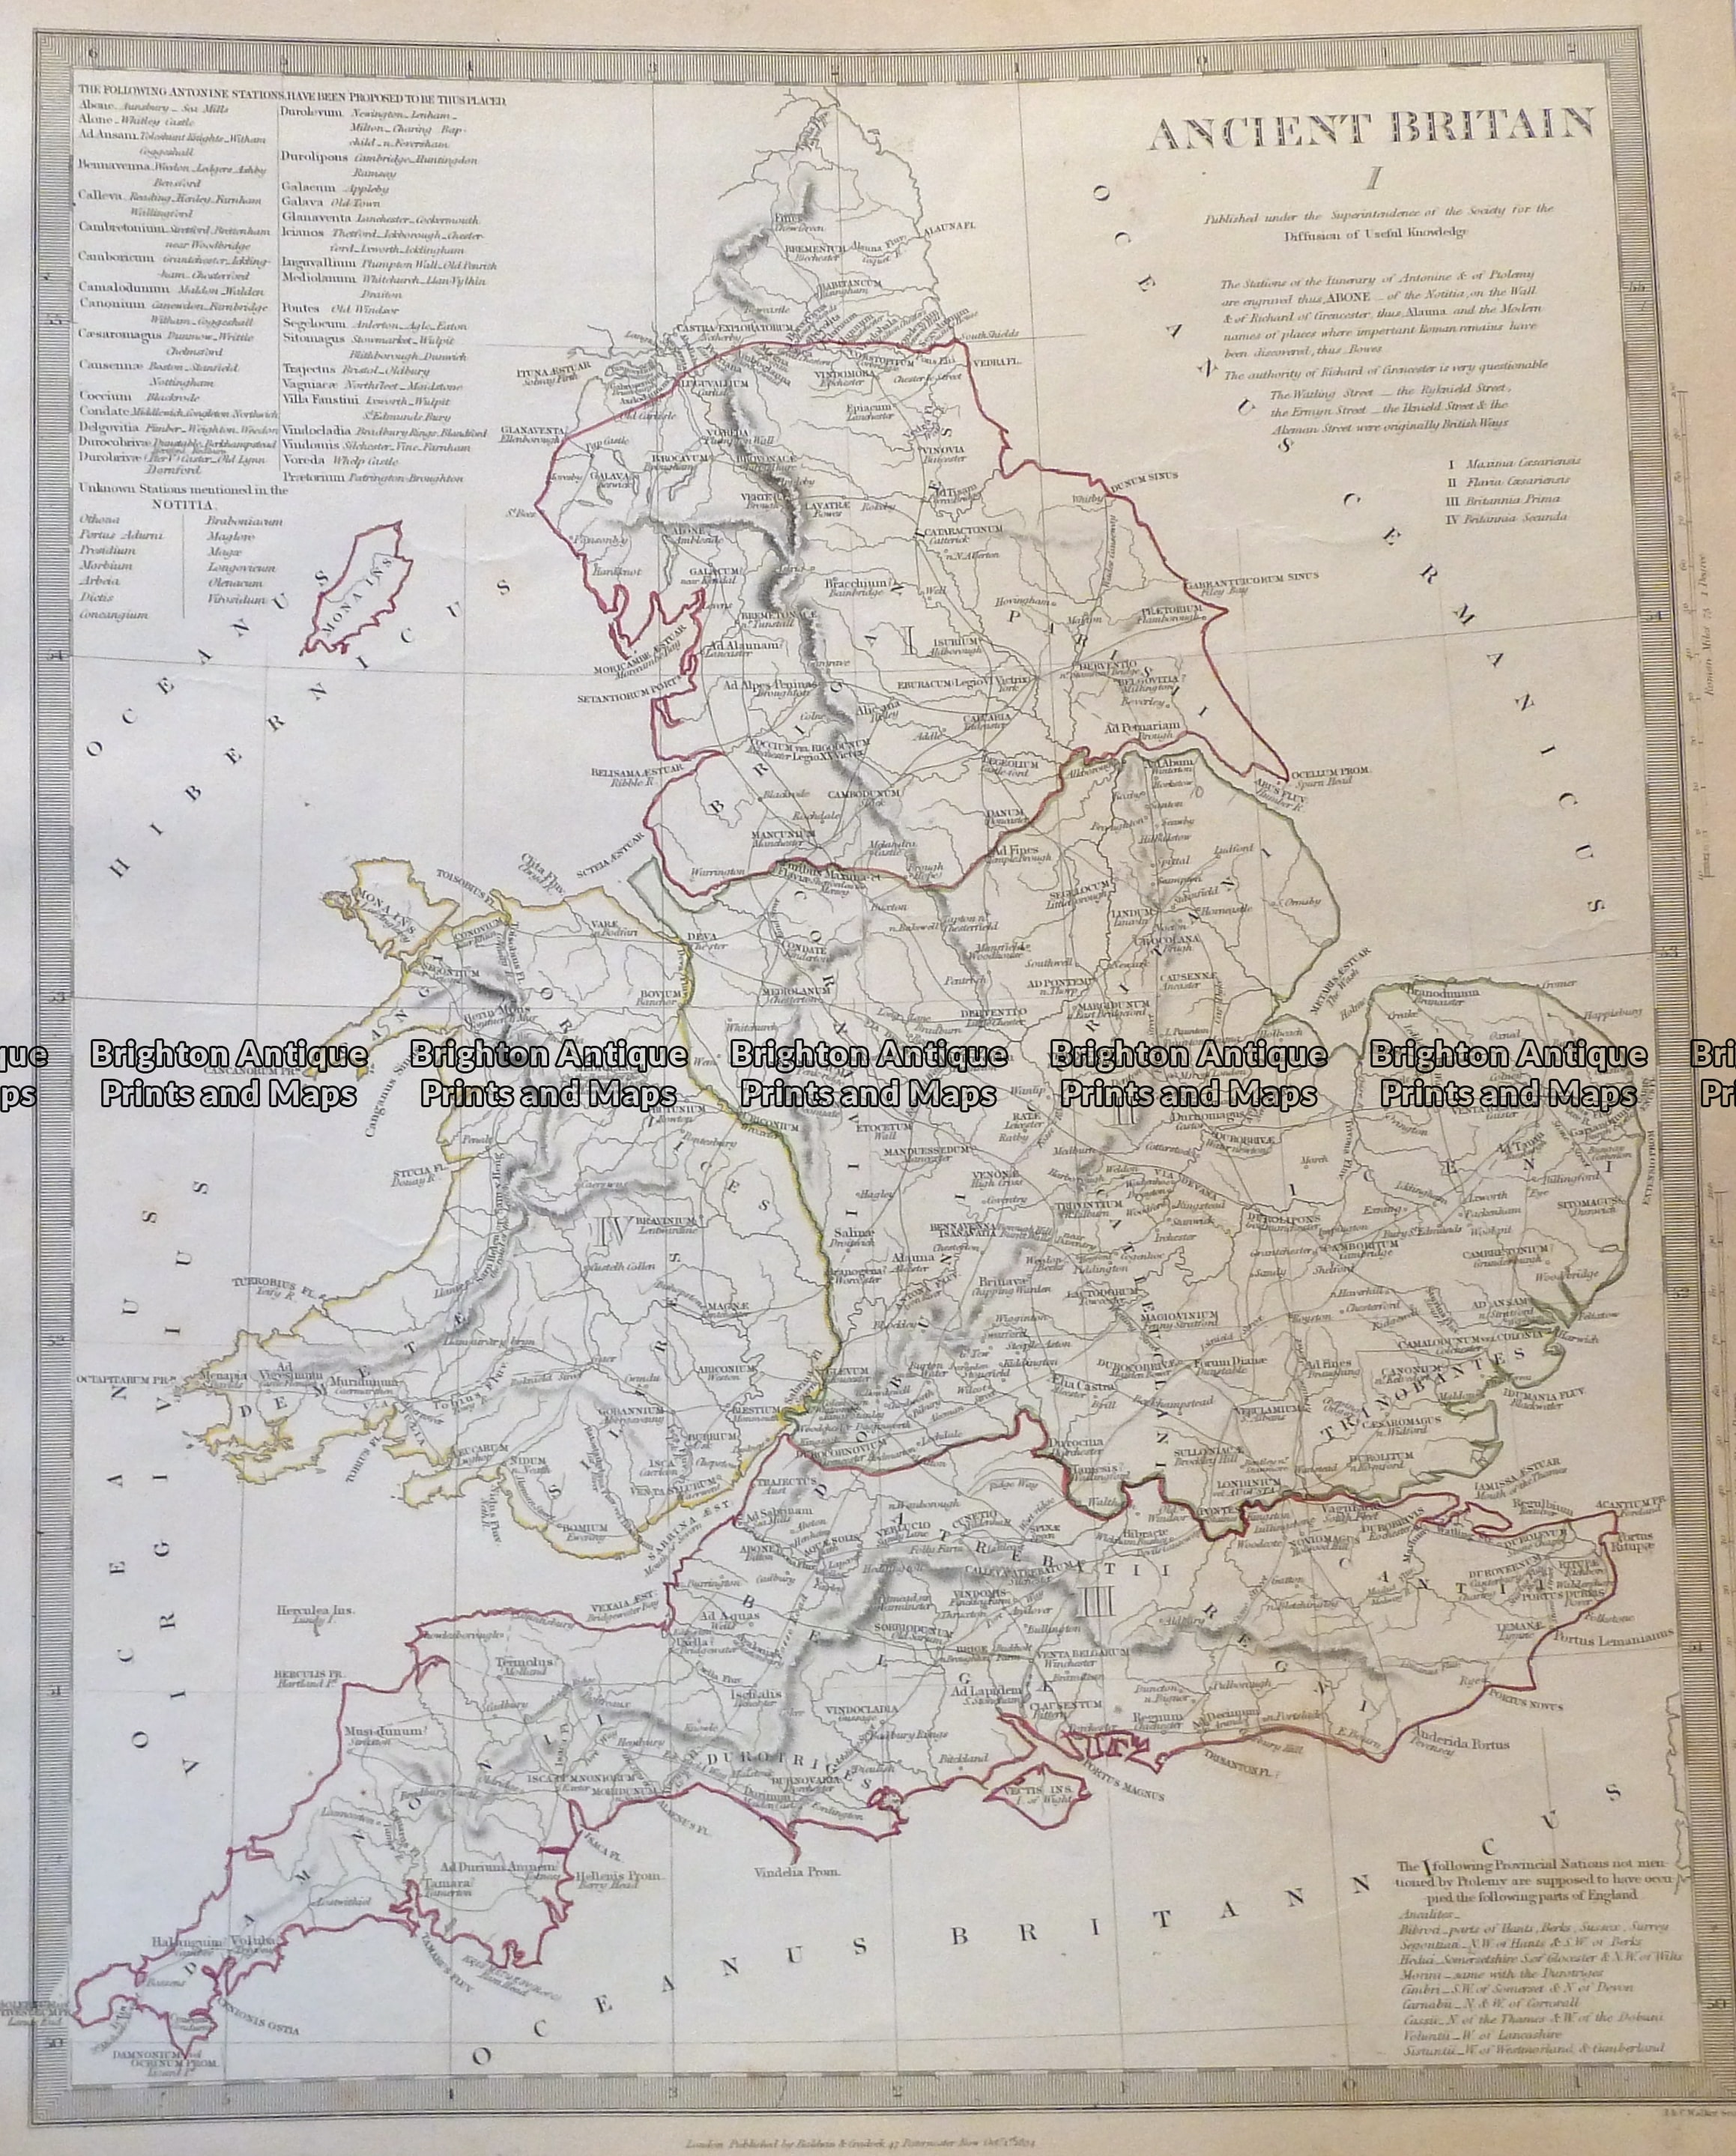 4 167 Ancient England And Wales C 1844 Brighton Antique Maps